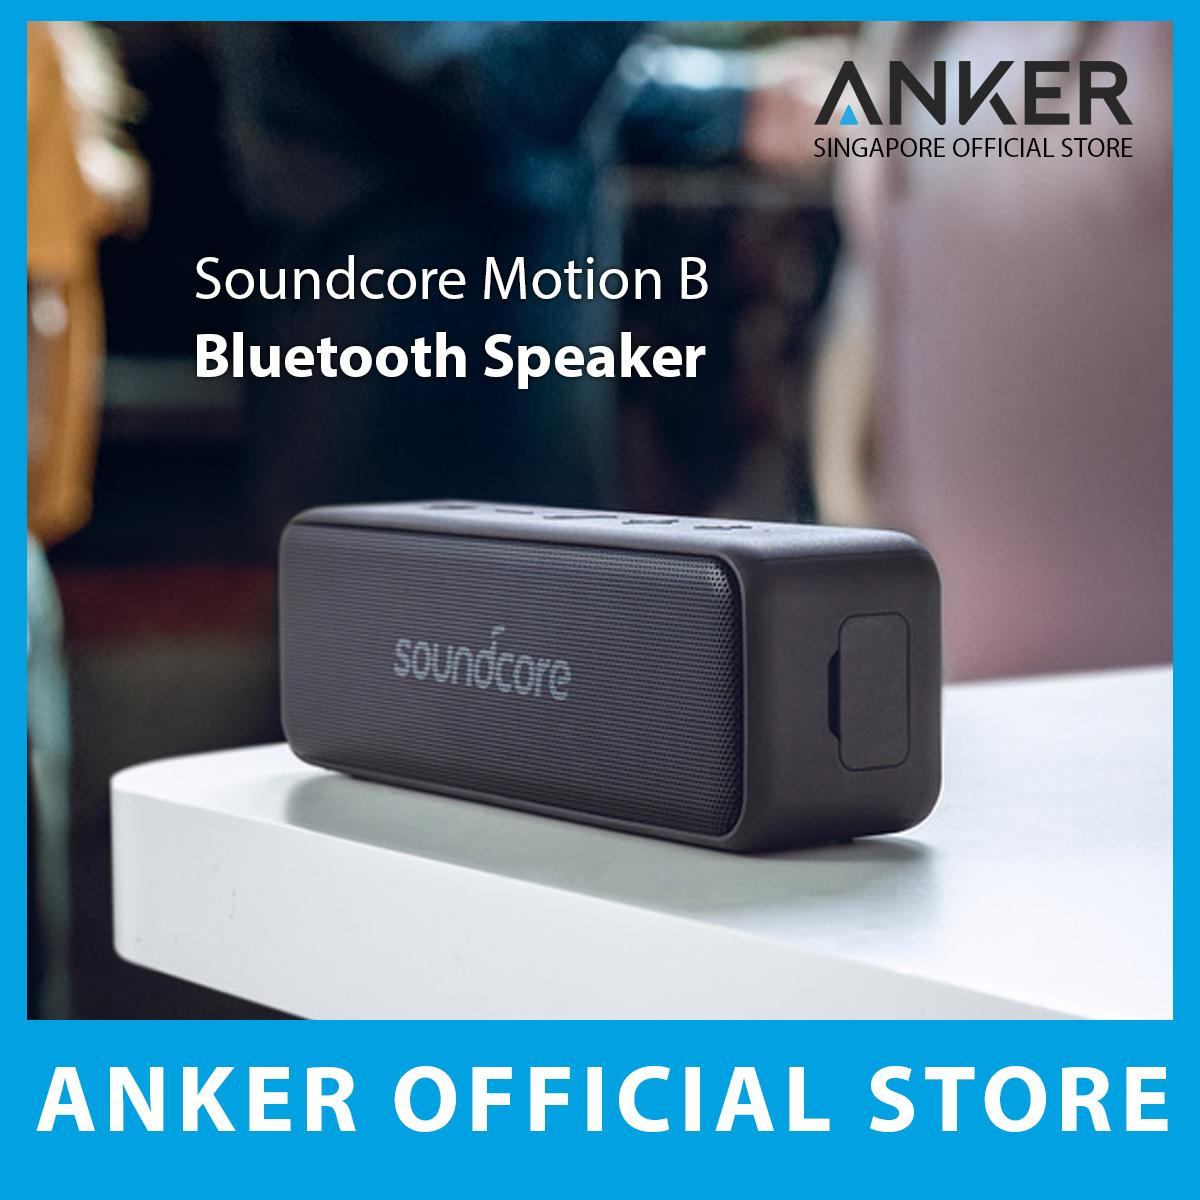 b6e32a7ddc294 Anker Soundcore Motion B 12W Portable Bluetooth Speaker with 12W Louder  Stereo Sound, IP67 Waterproof, and 12+ Hr Playtime, Soundcore Speaker  Upgraded ...